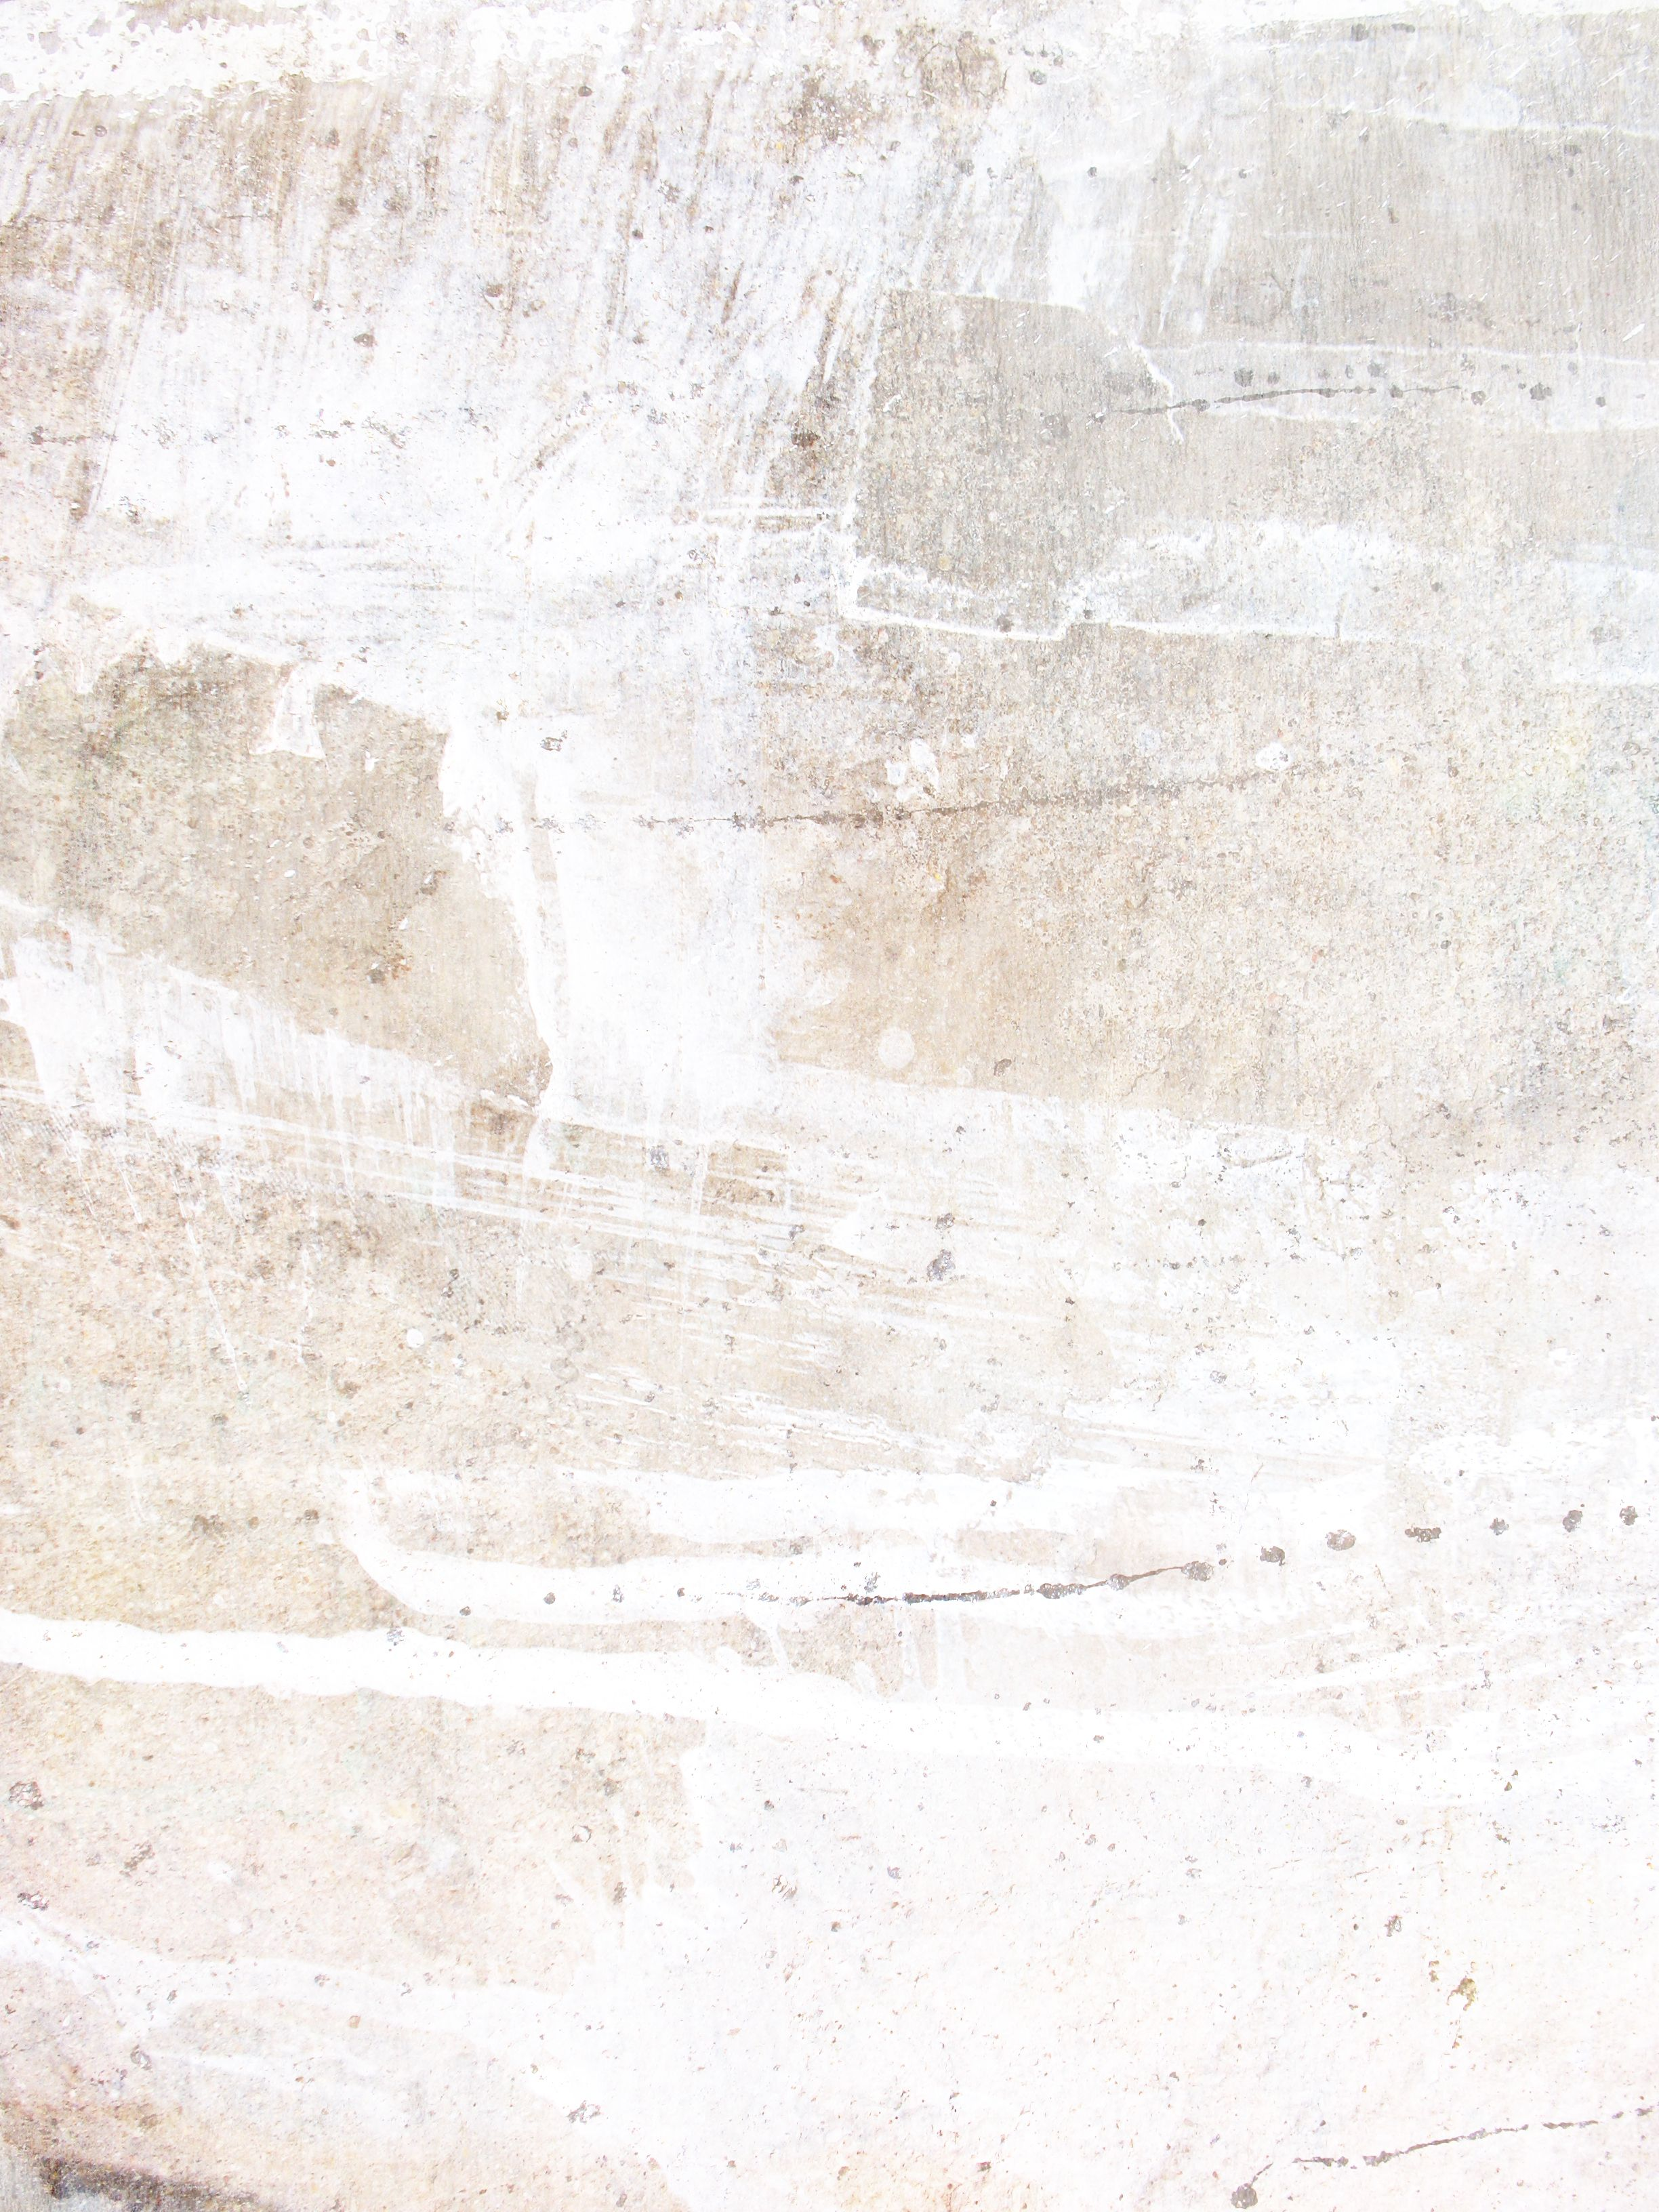 25 Subtle And Light Grunge Textures Wallpaper Texture Papier